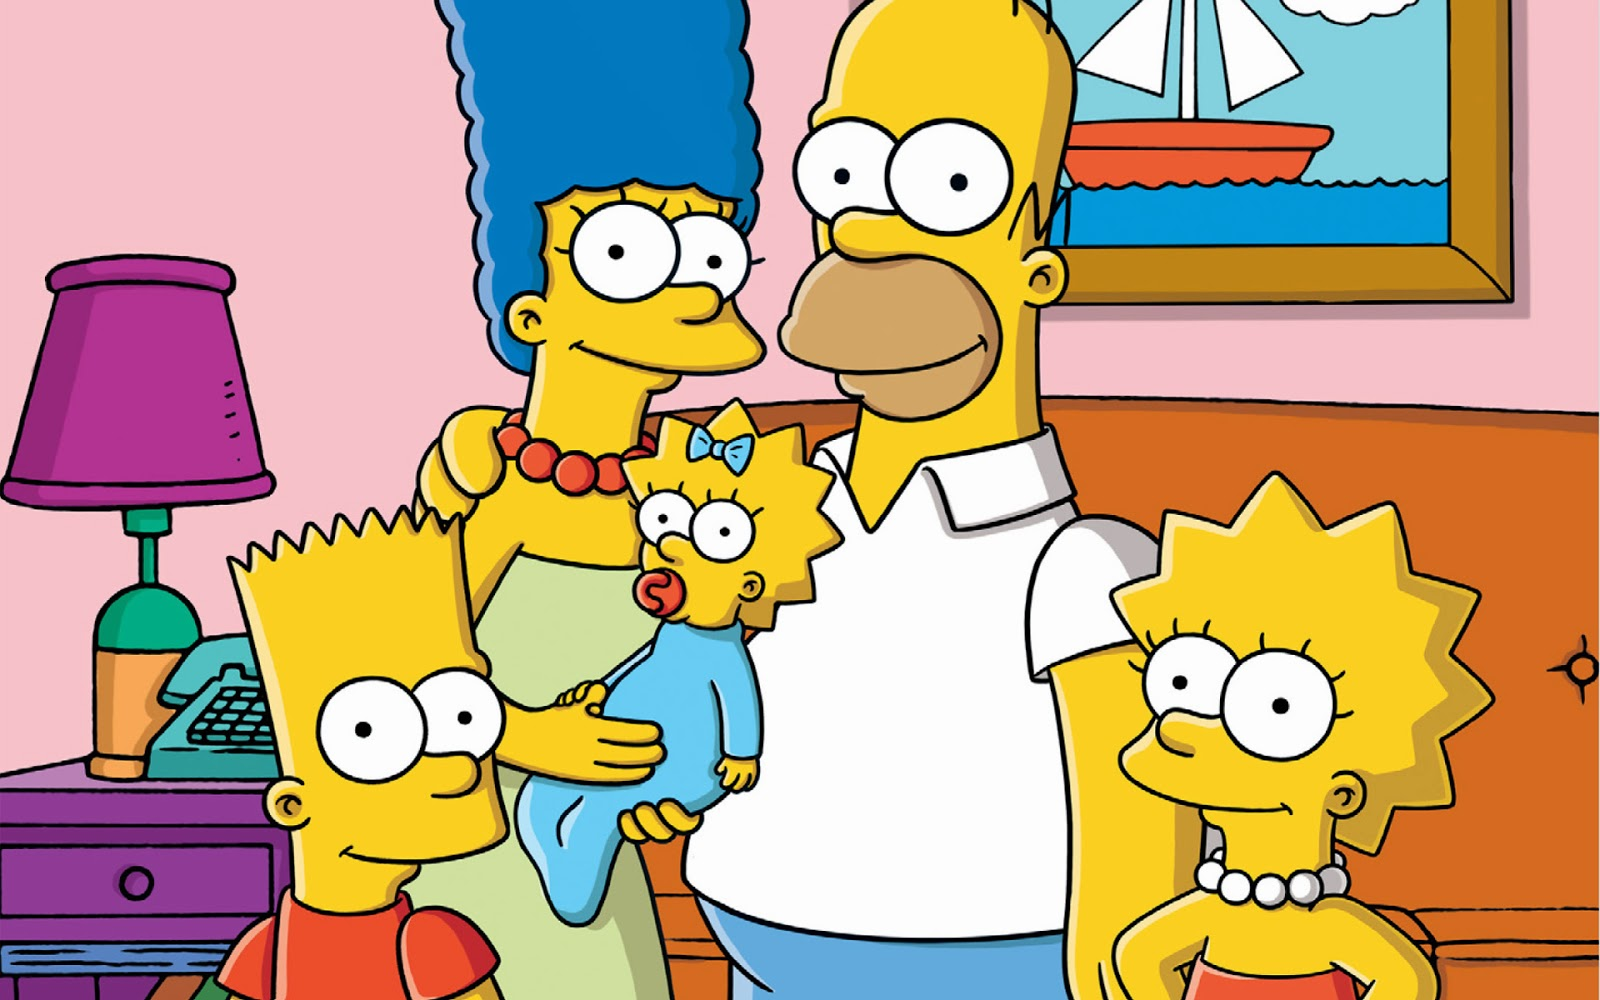 FXX will air a 12 day The Simpsons marathon